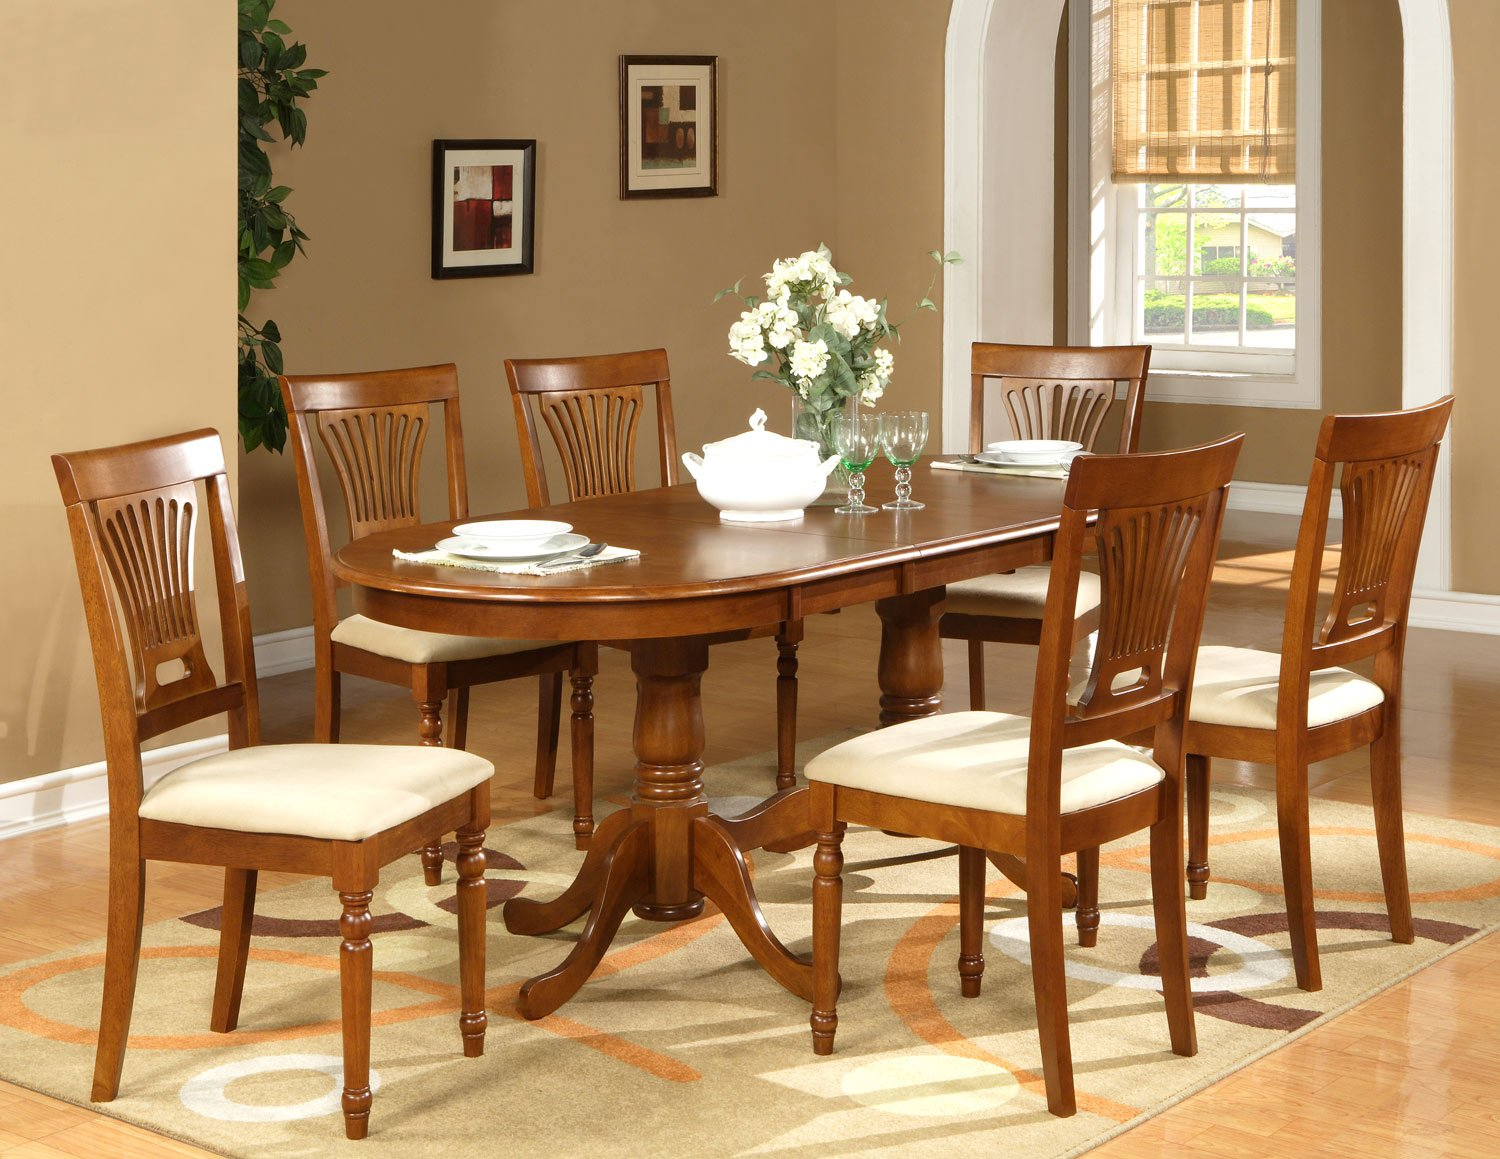 "5-PC Plainfield Oval Dining Room Table Set + 4 Chairs - Size: 42""x78"" in Saddle Brown. SKU: PL5-SBR"